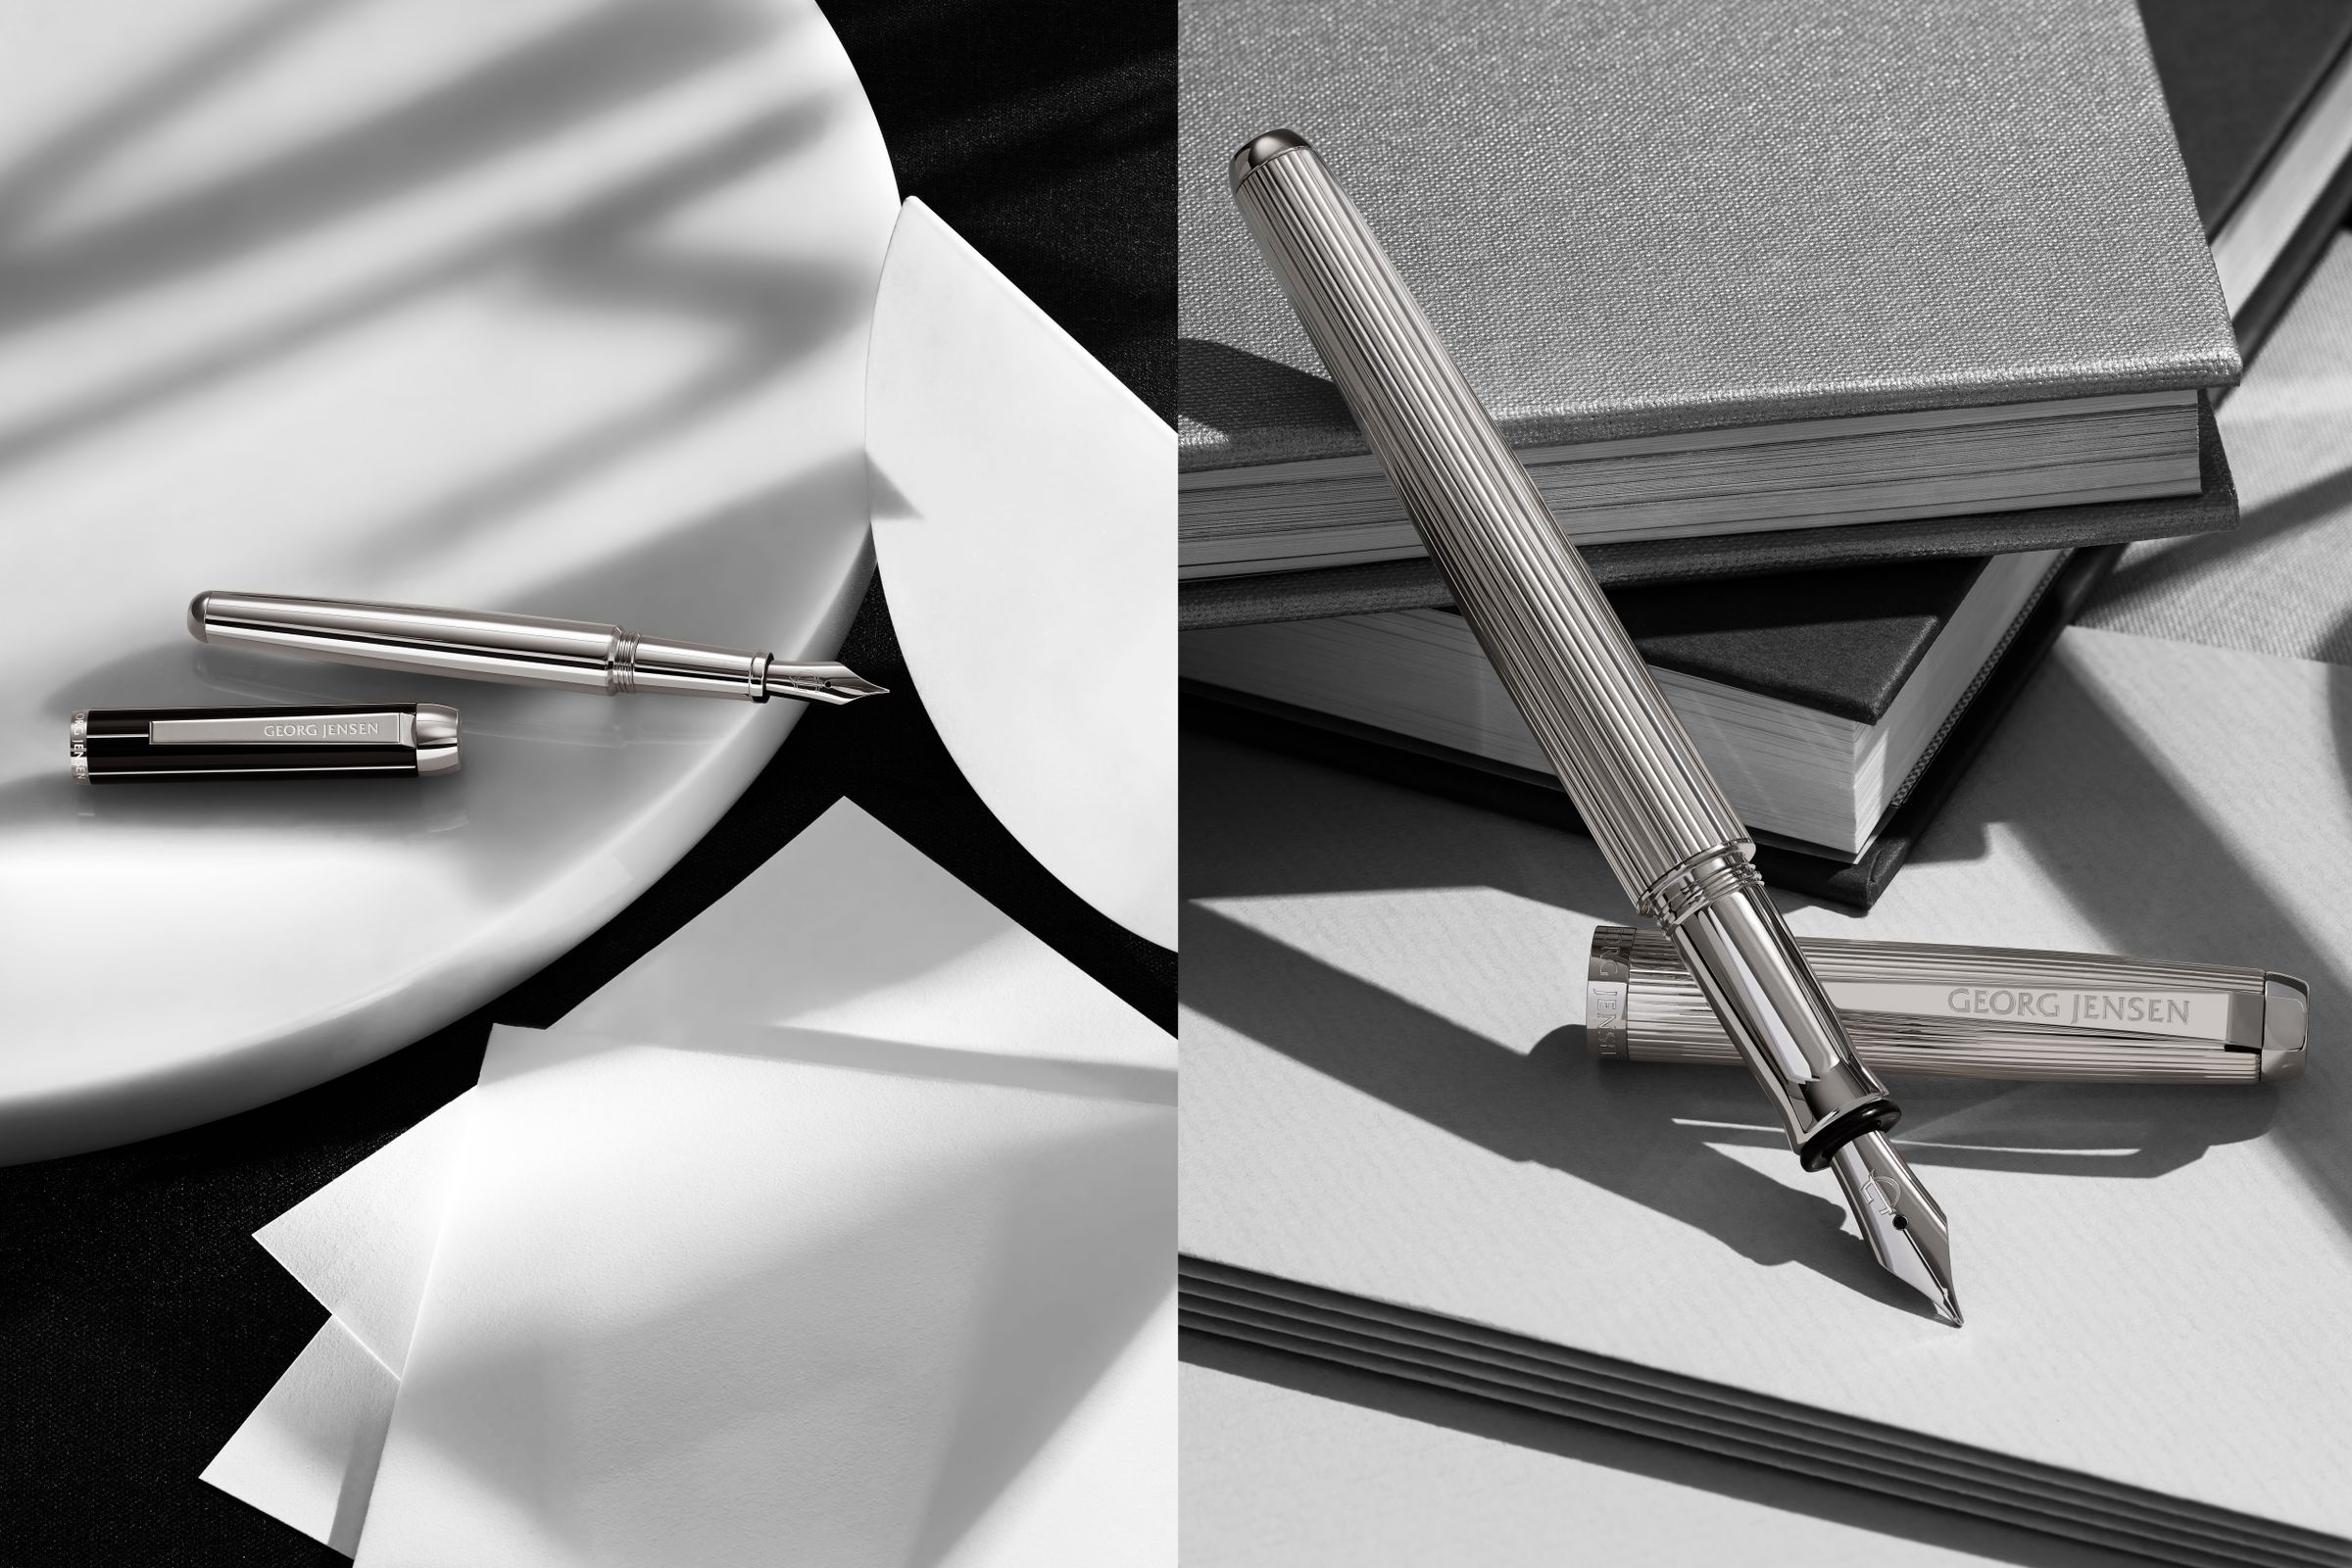 Georg Jensen still-life of ink pens photographed by Toby McFarlan Pond